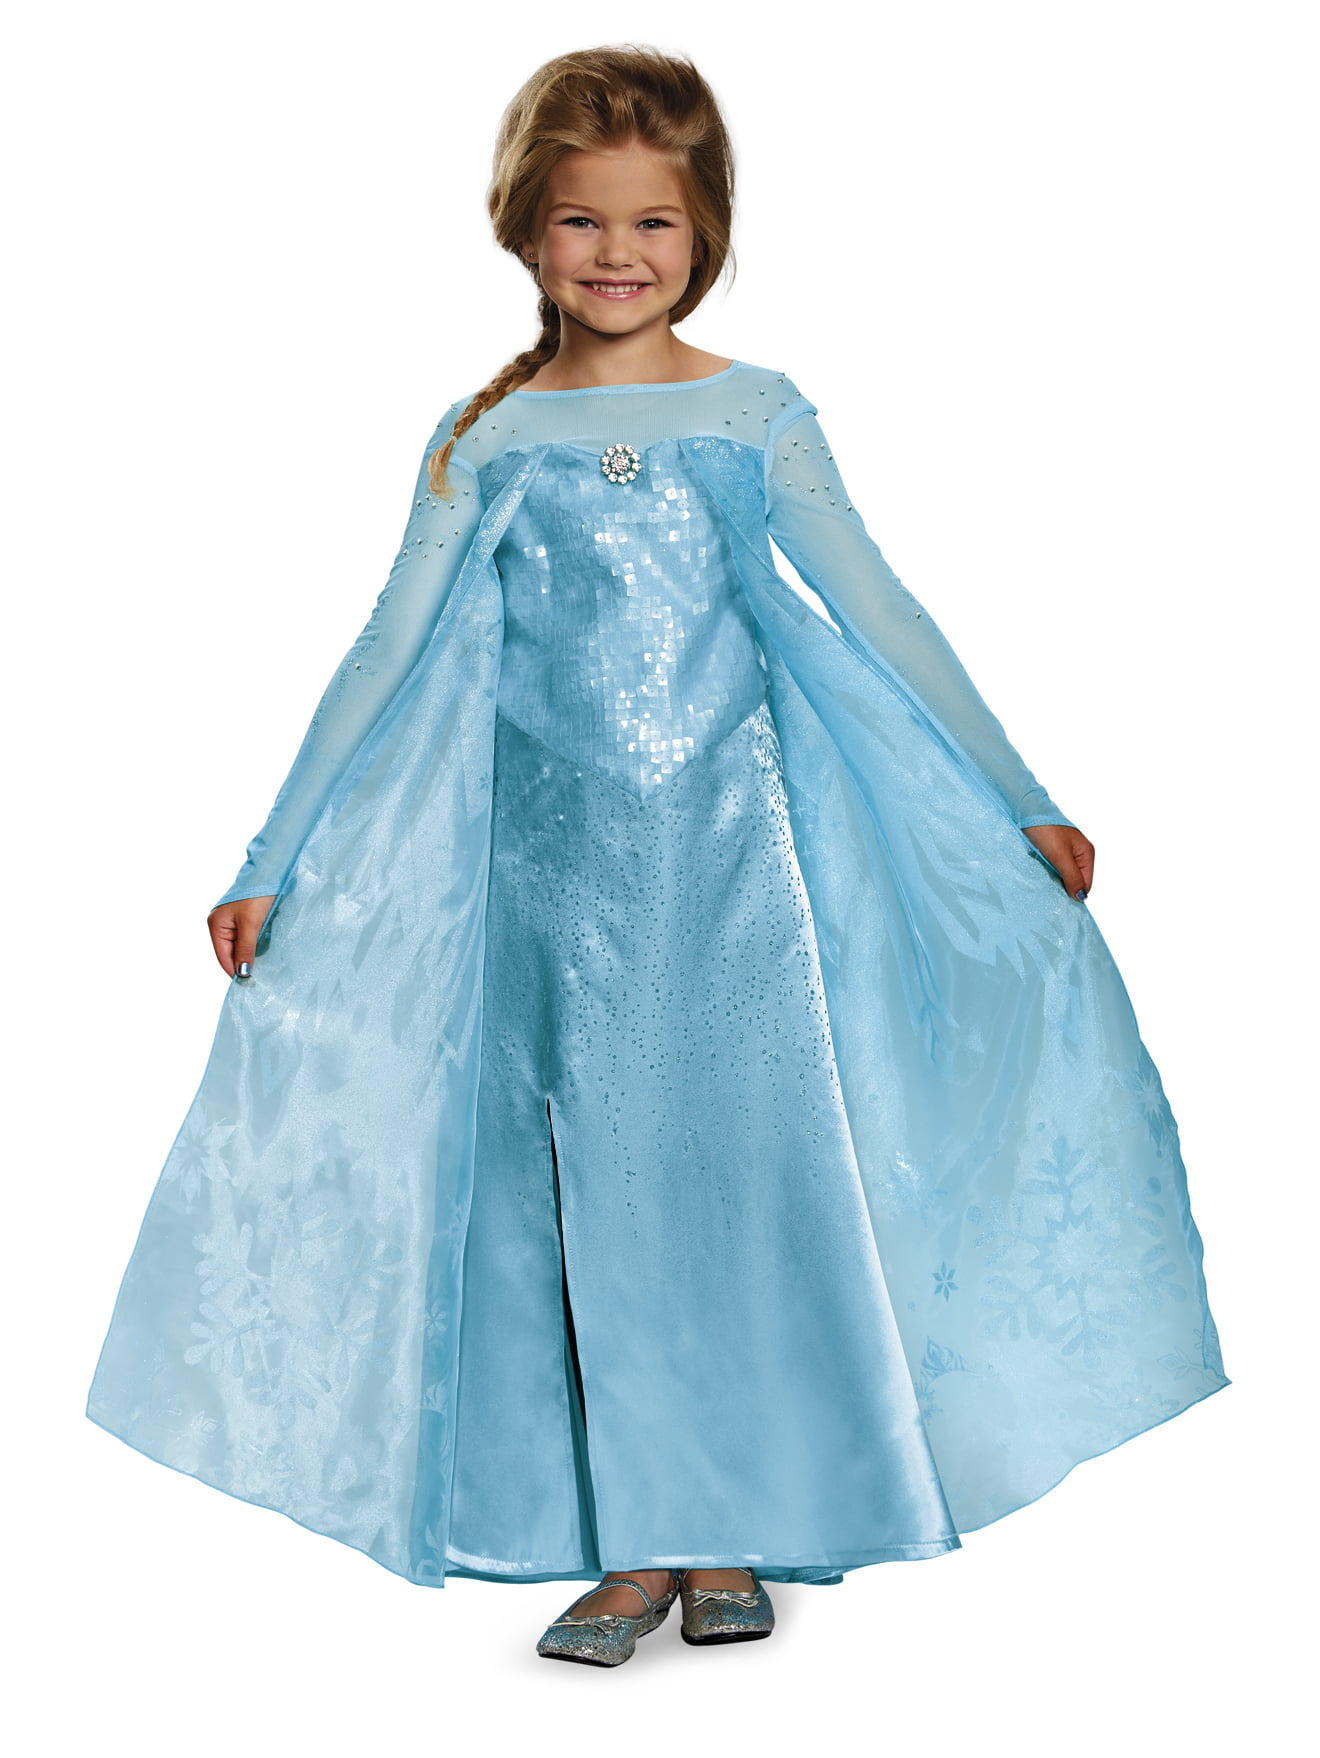 Frozen Costumes: From Elsa Costumes to Anna Costumes and Olaf Costume, we have the Frozen Costume for you! This year, you can let go your inner Disney fan and go all out with a Disney Frozen costume!